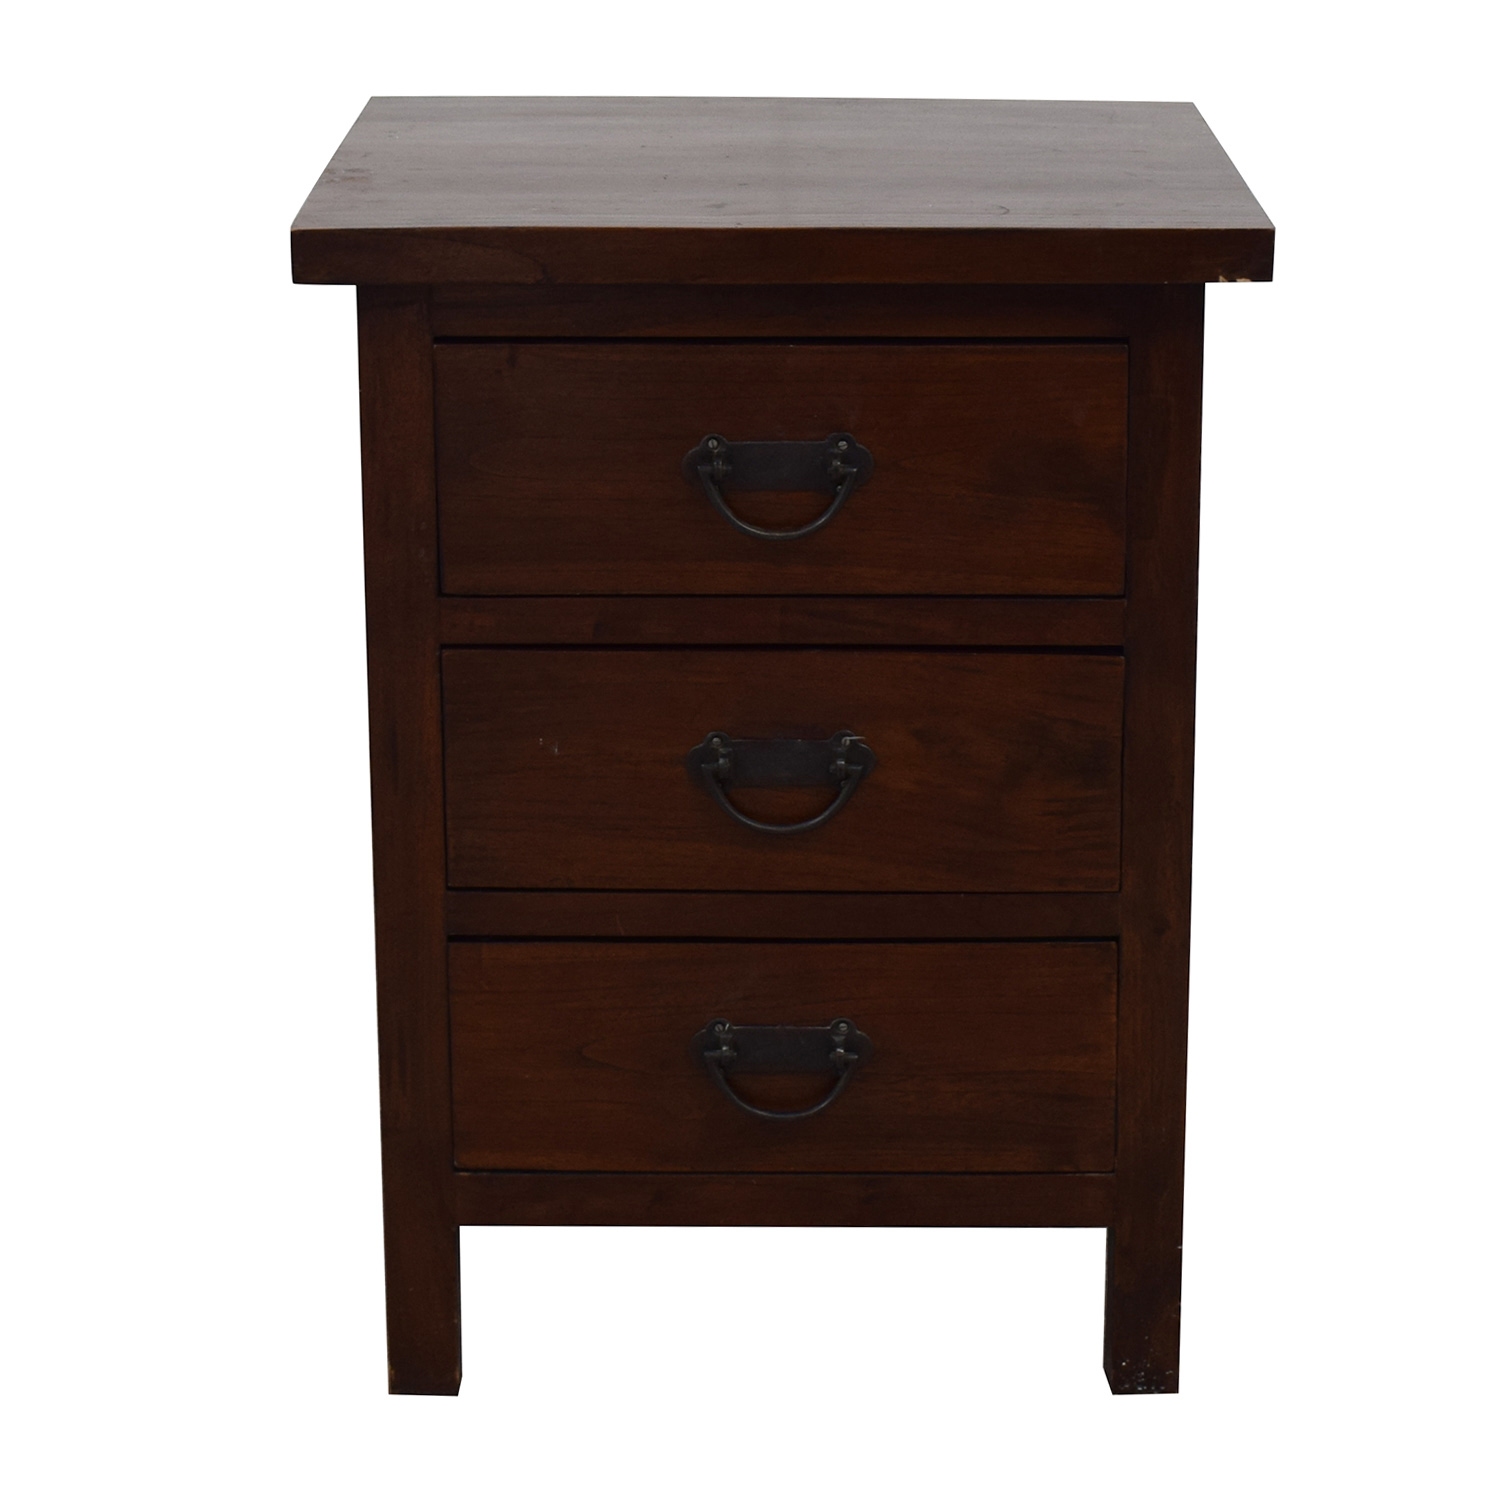 Crate & Barrel Crate & Barrel Nightstand with Drawers second hand